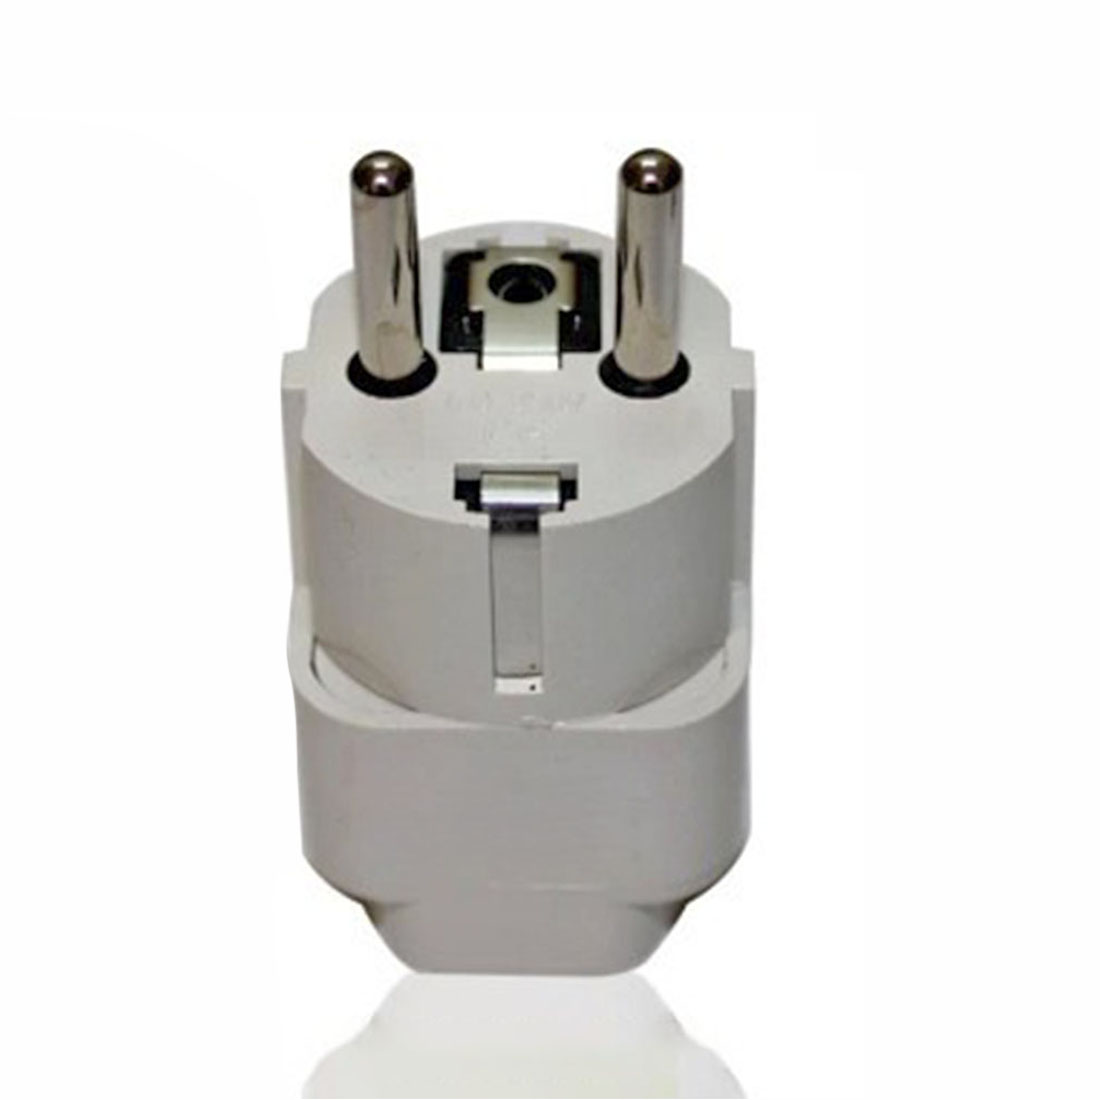 Universal EU Plug Converter Adapter (For Countries With EU Plug/US Plug)